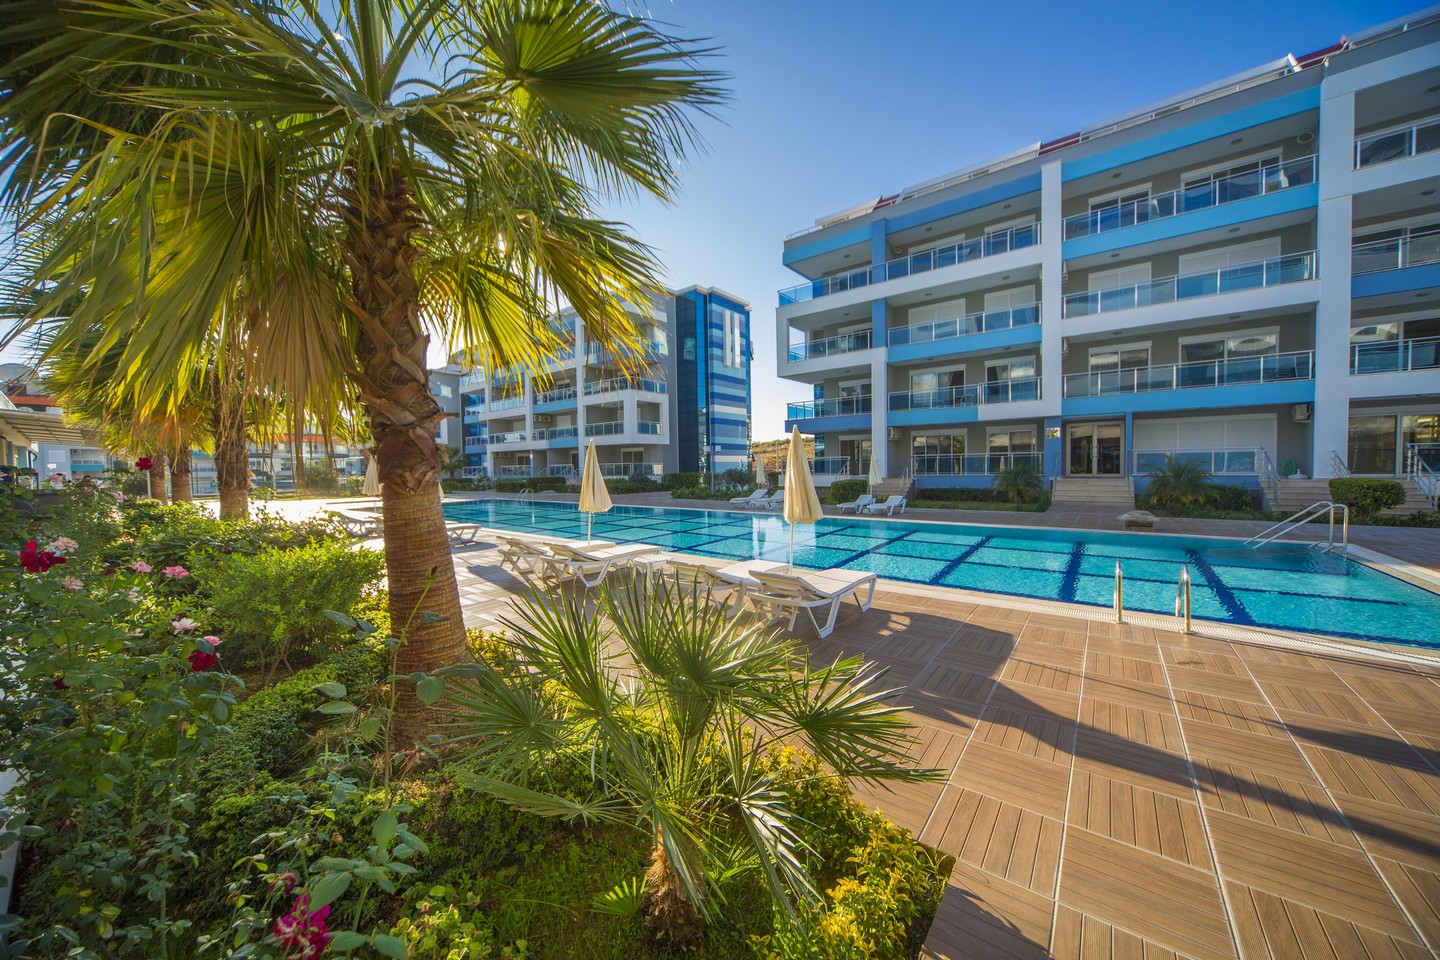 LUXURY RESIDENCE WITH WONDERFUL APARTMENTS IN ALANYA